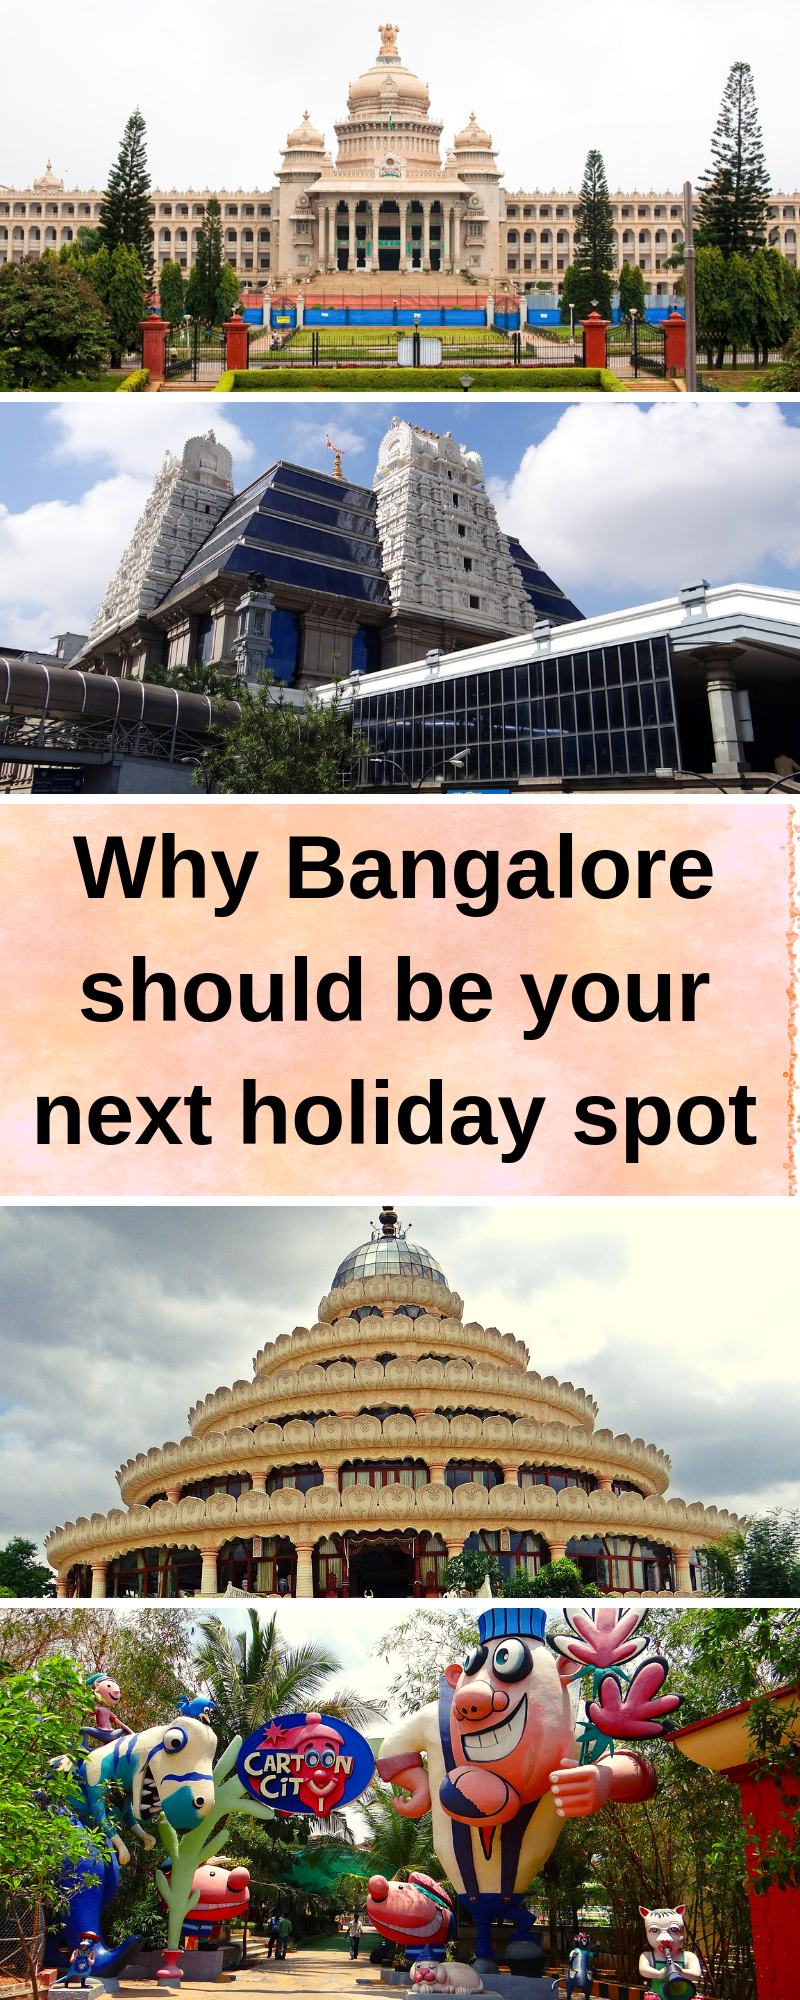 Why Bangalore should be your next holiday spot